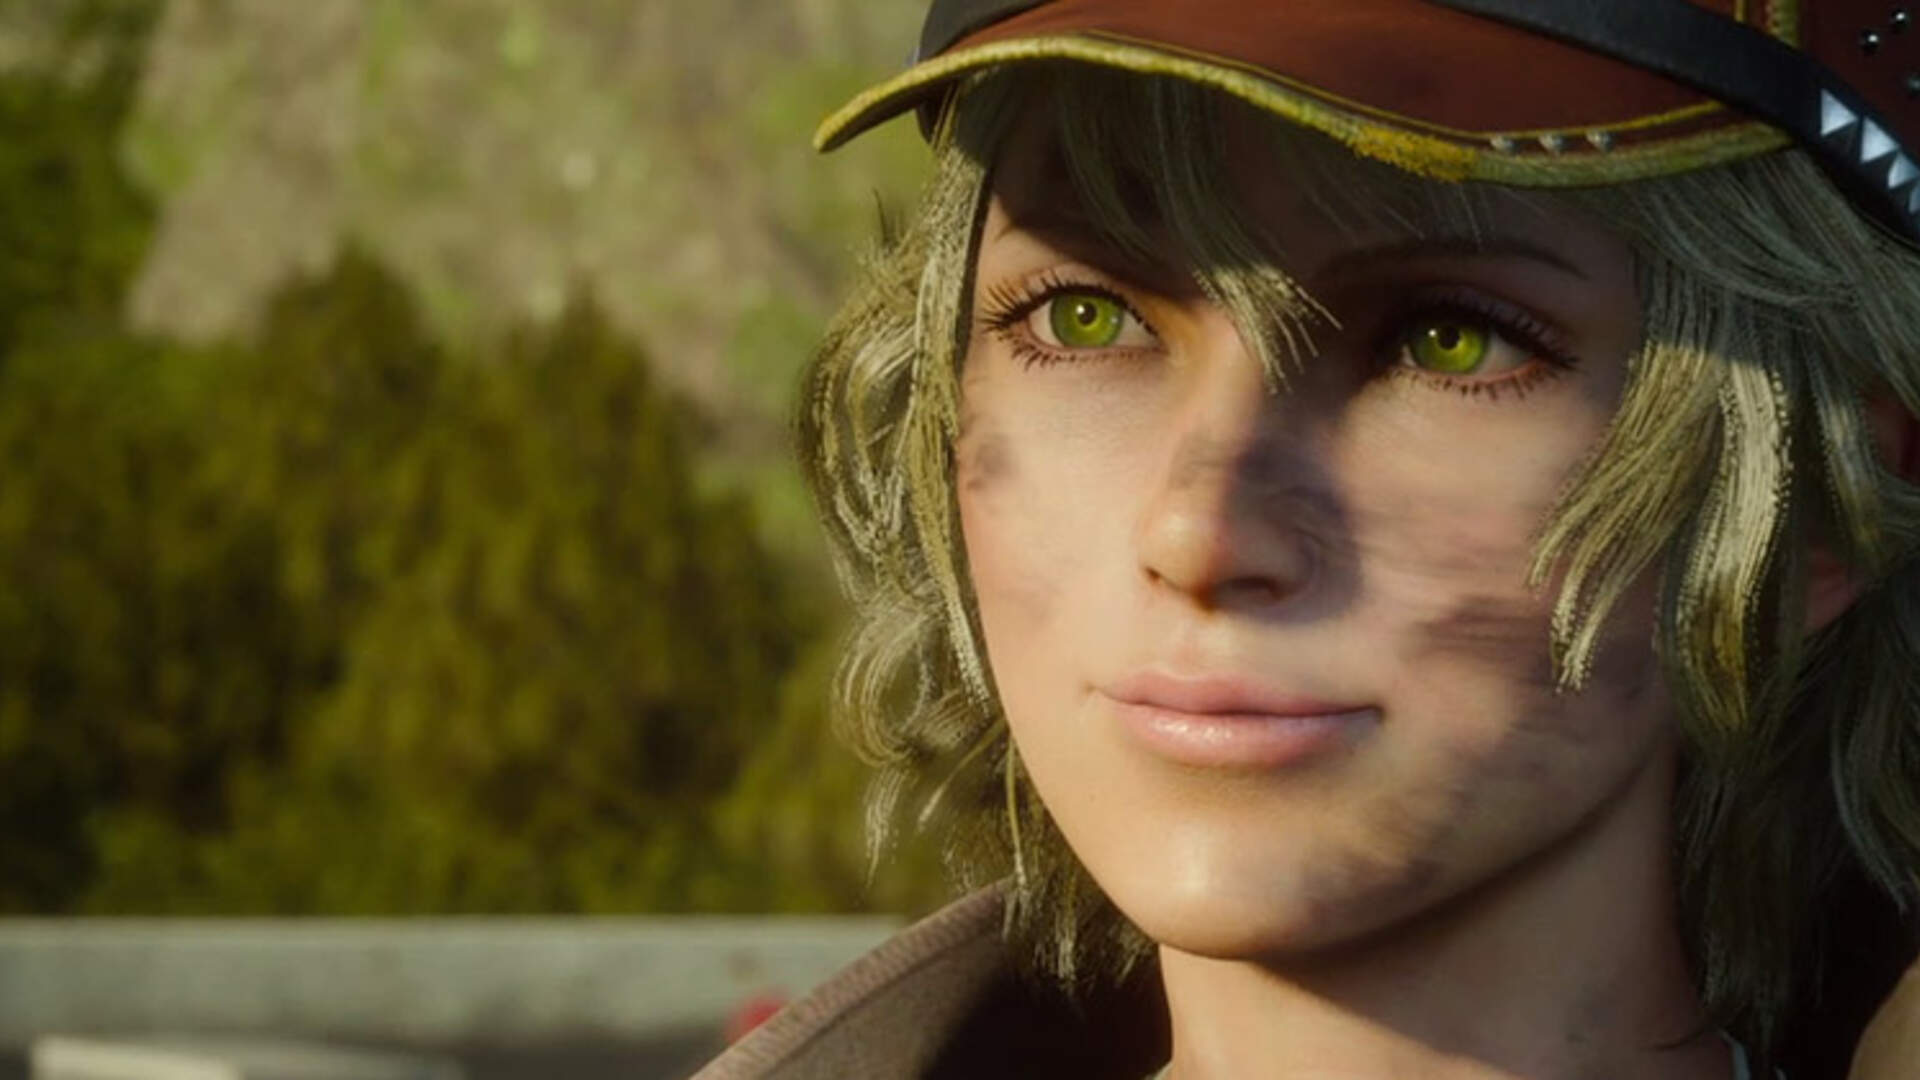 After the Review: Let's Talk About the Second Half of Final Fantasy XV